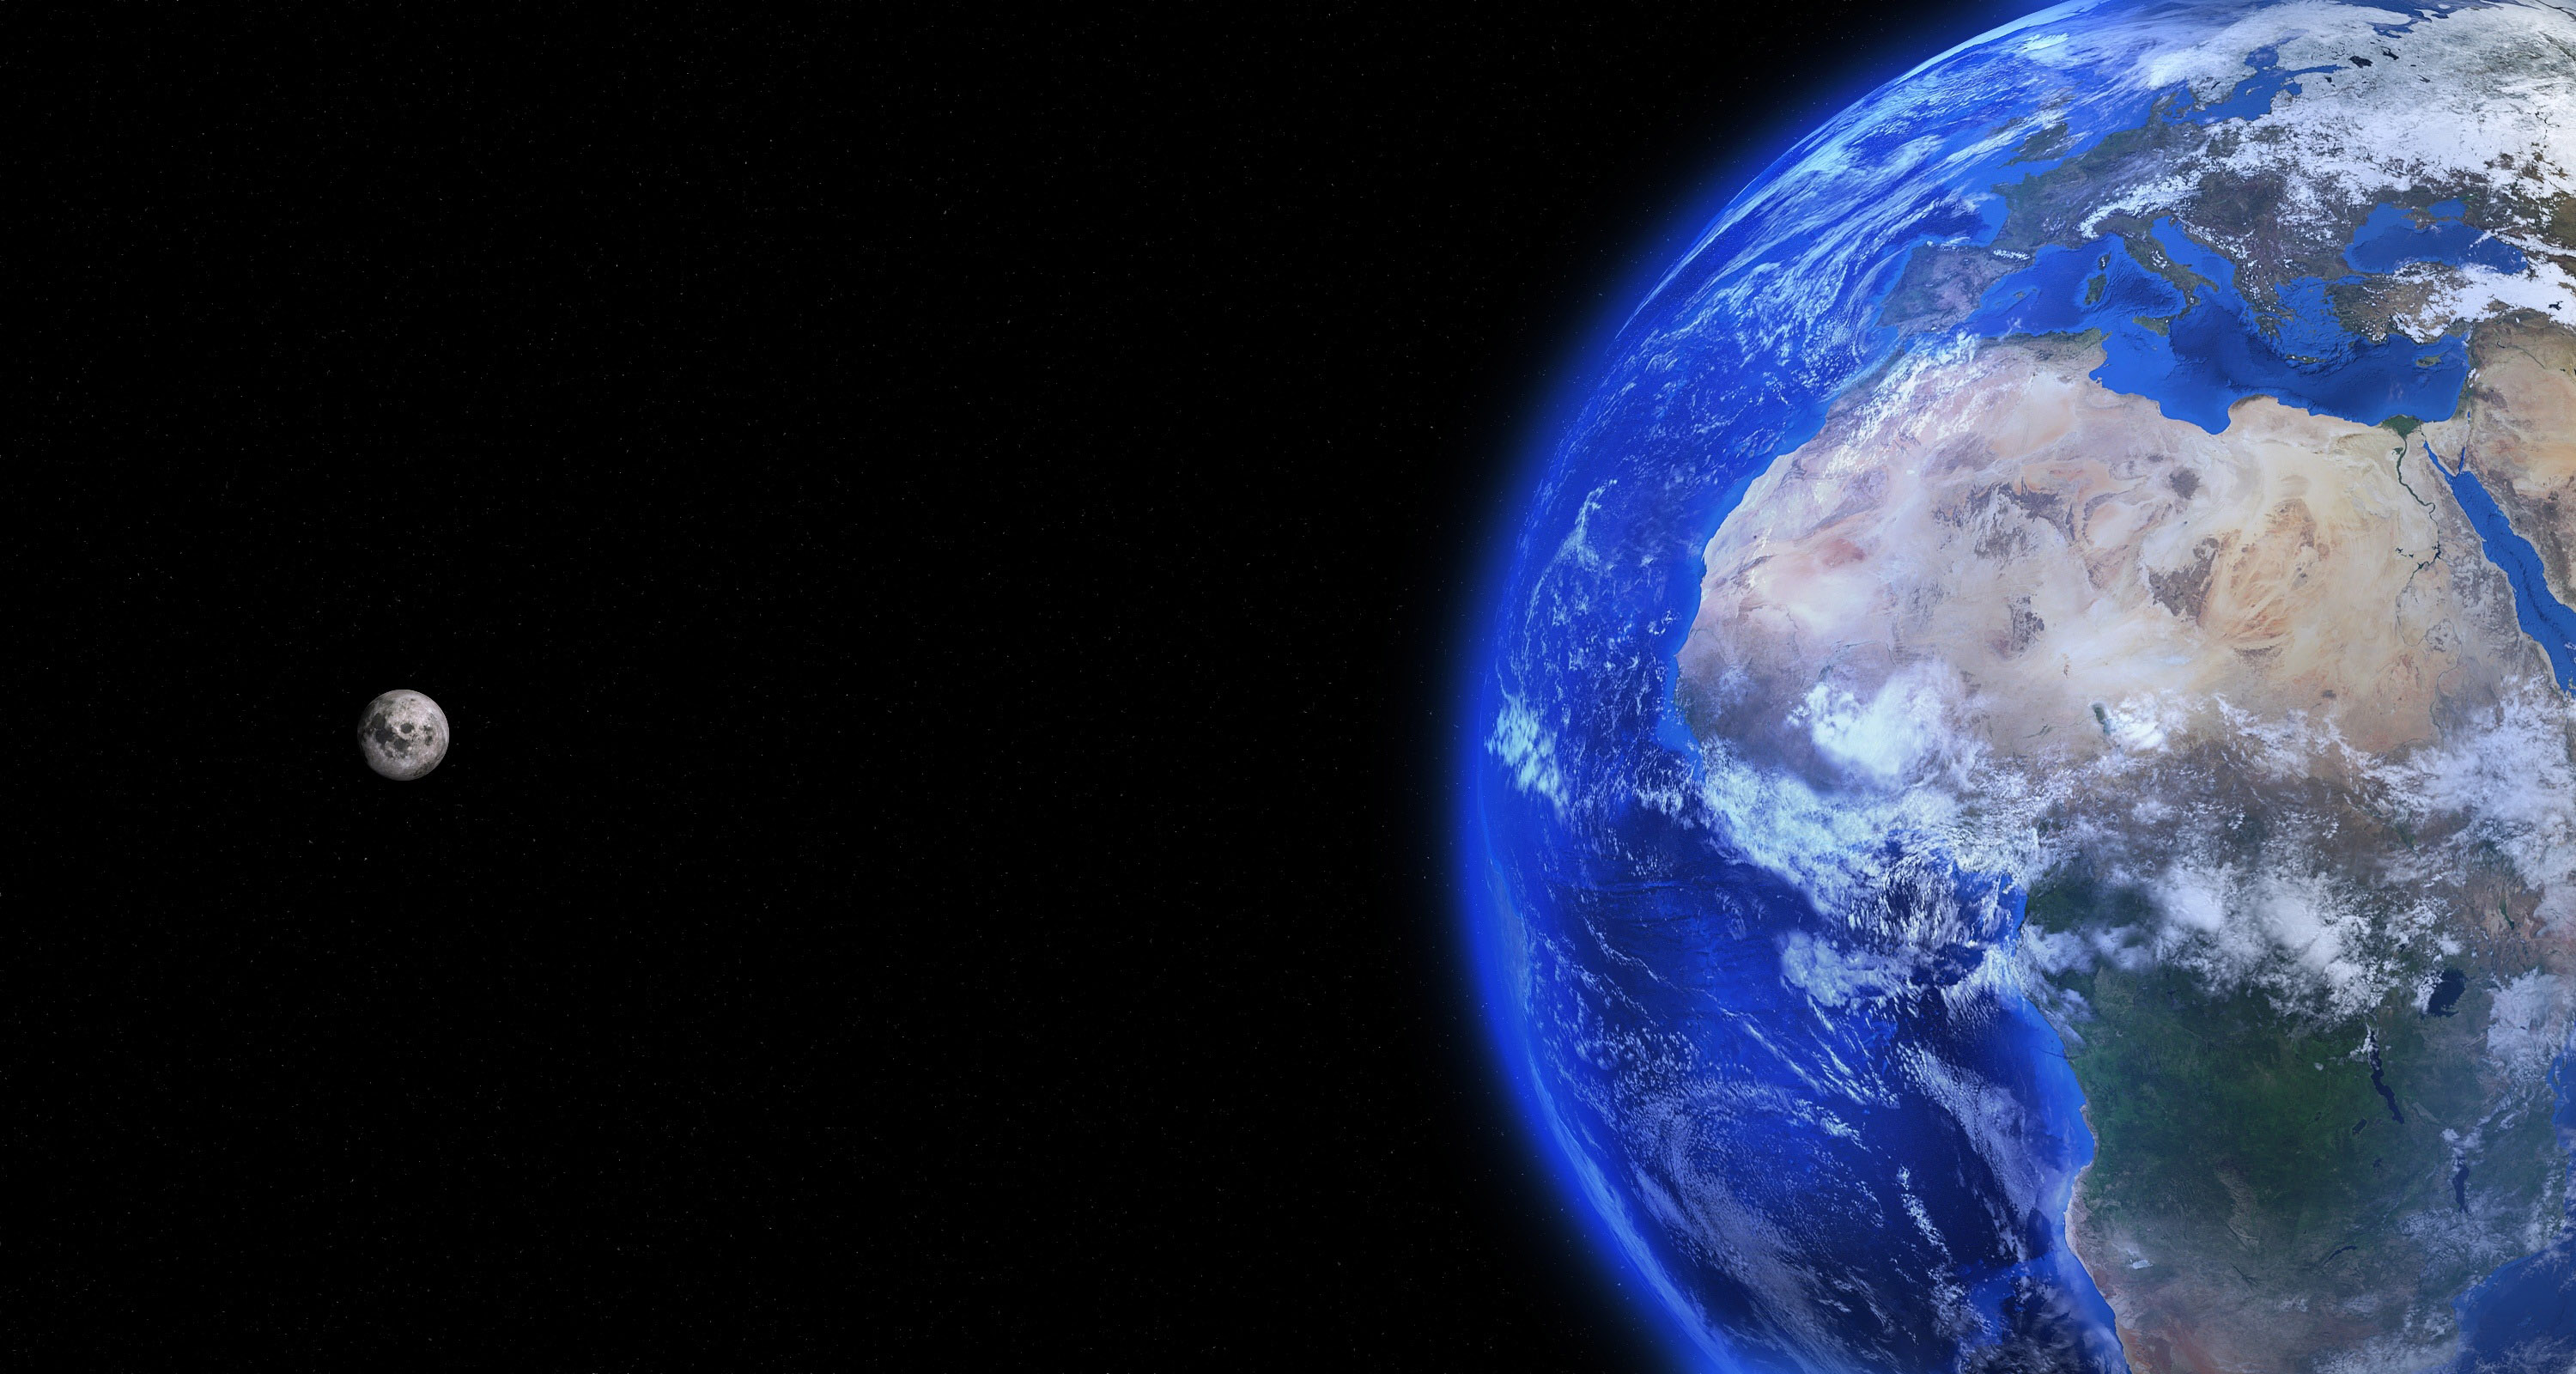 The Moon and Earth in space